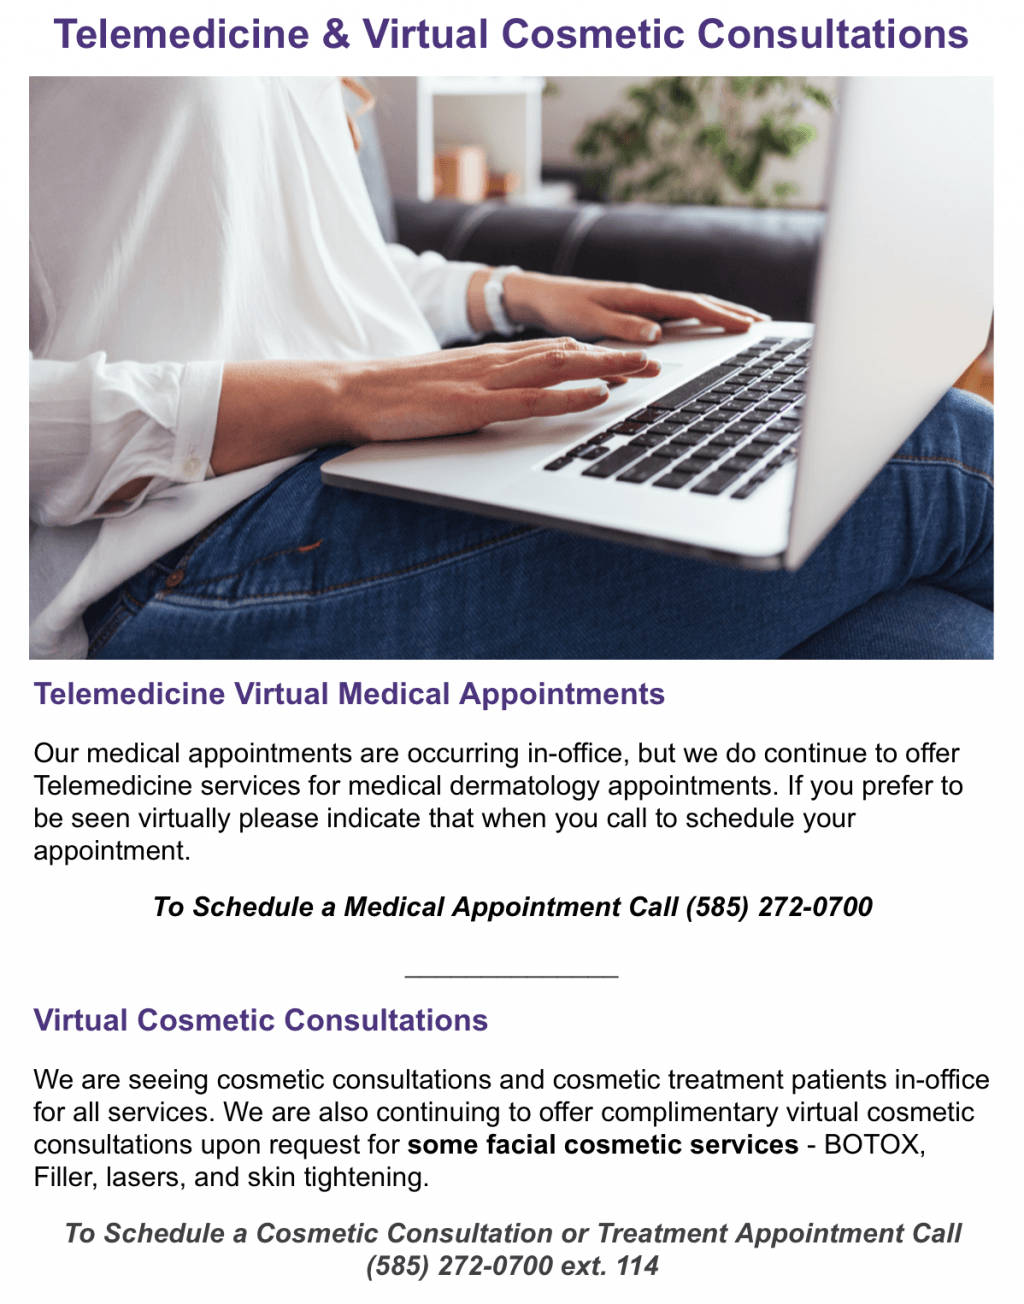 Telemedicine and Virtual cosmetic consultations